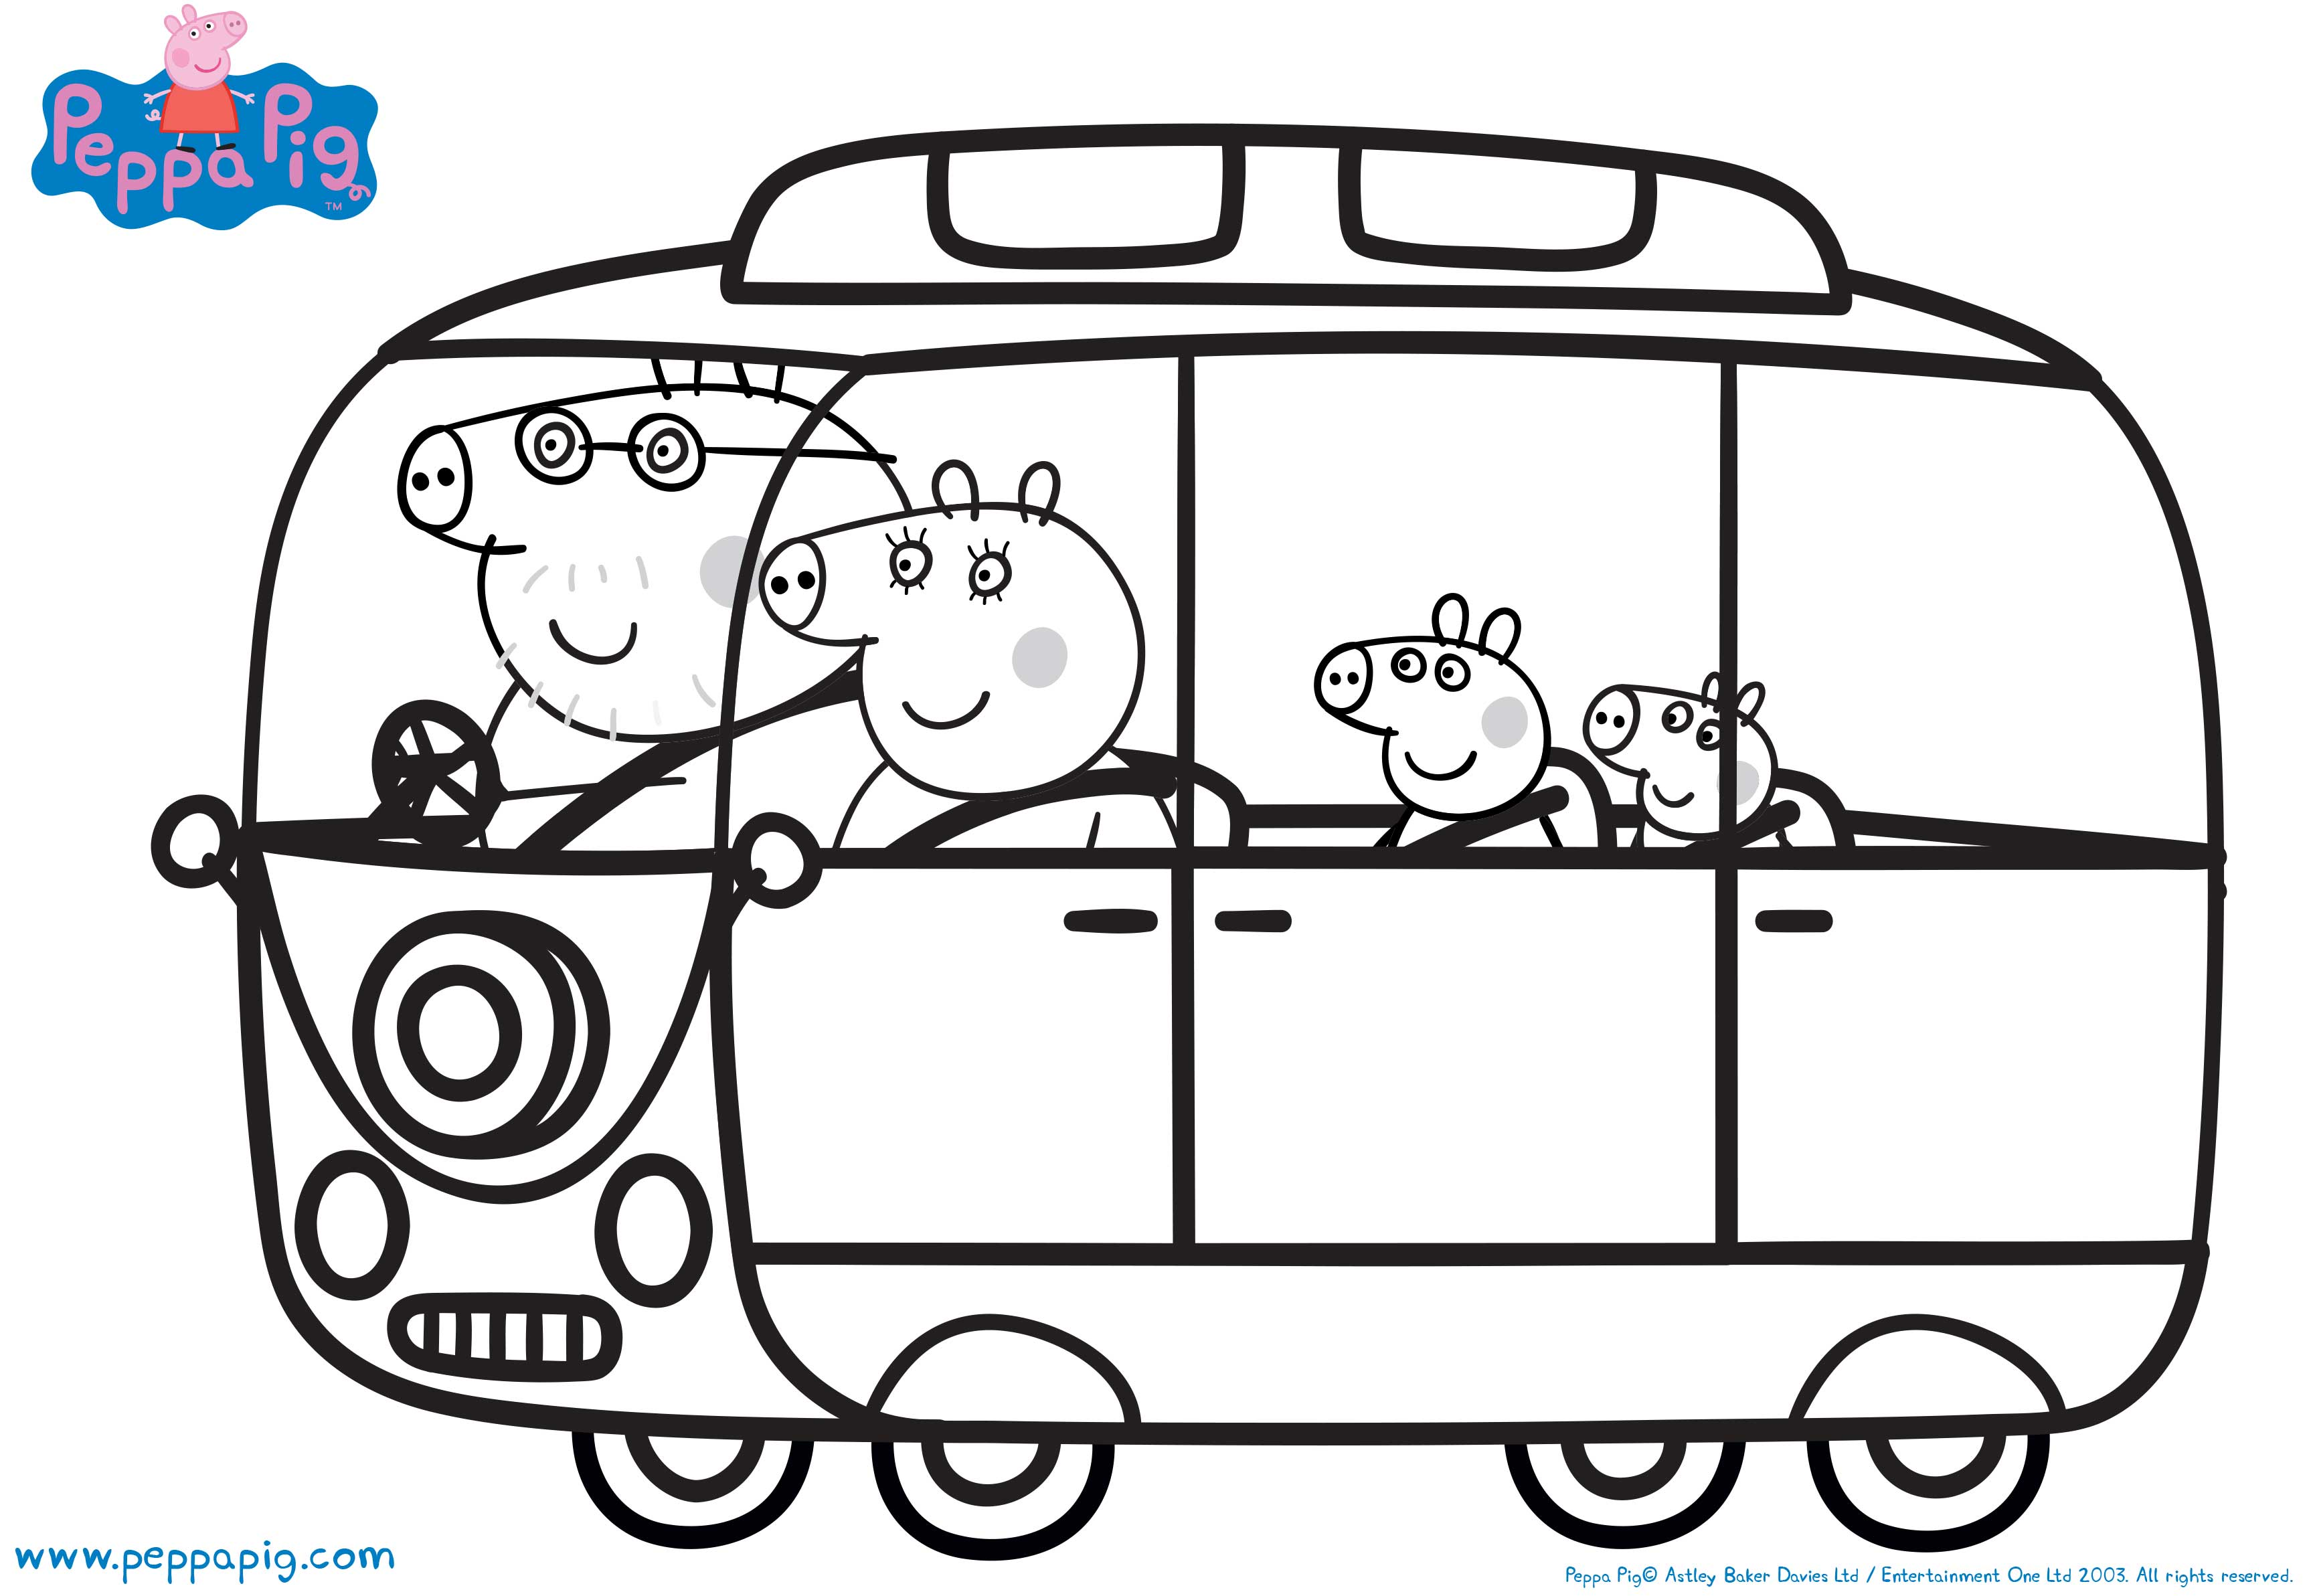 Peppa Pig Printable Coloring Pictures